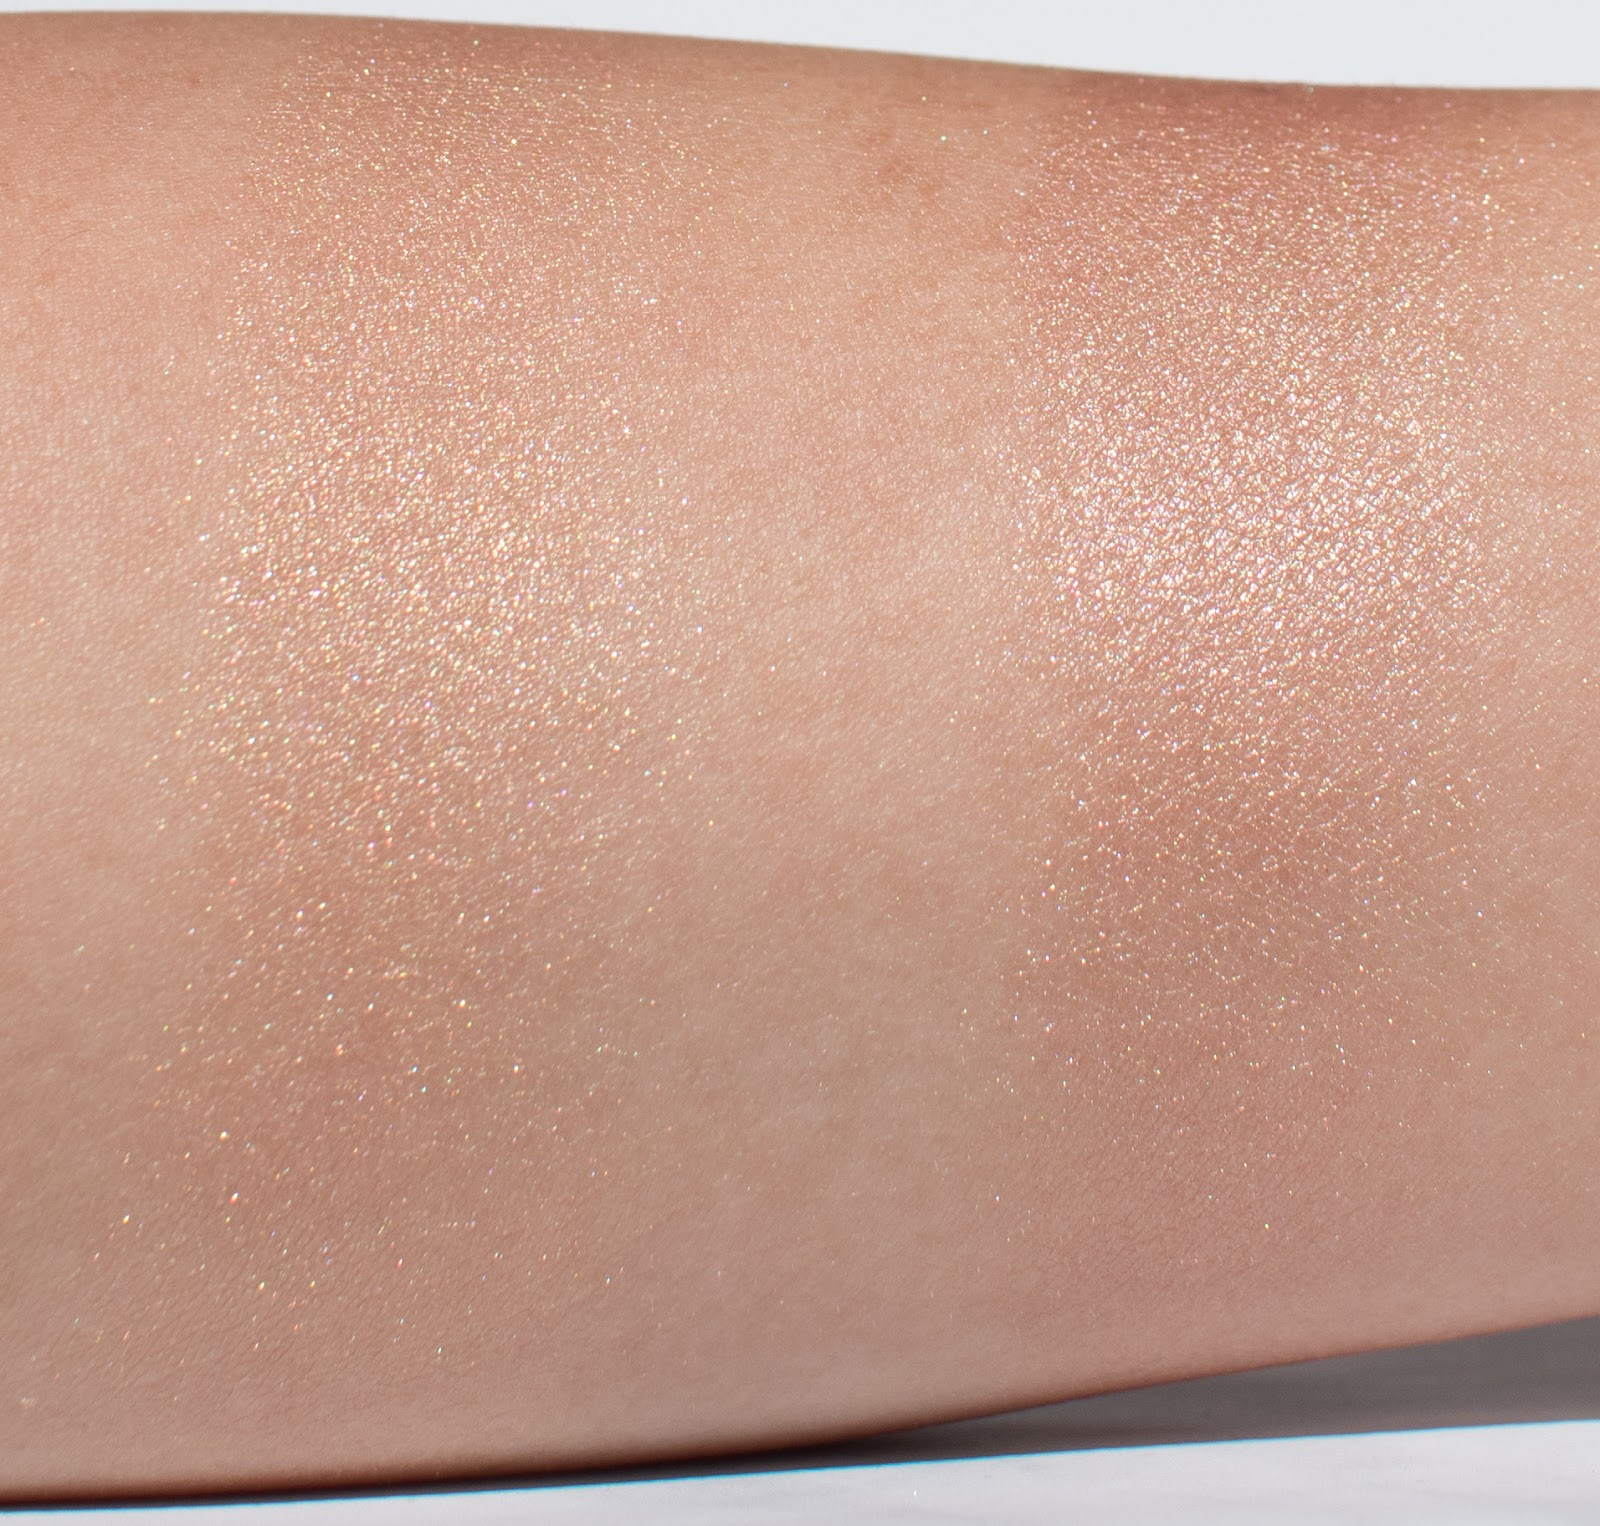 Makeup Geek Highlighter in Rekindle Swatch